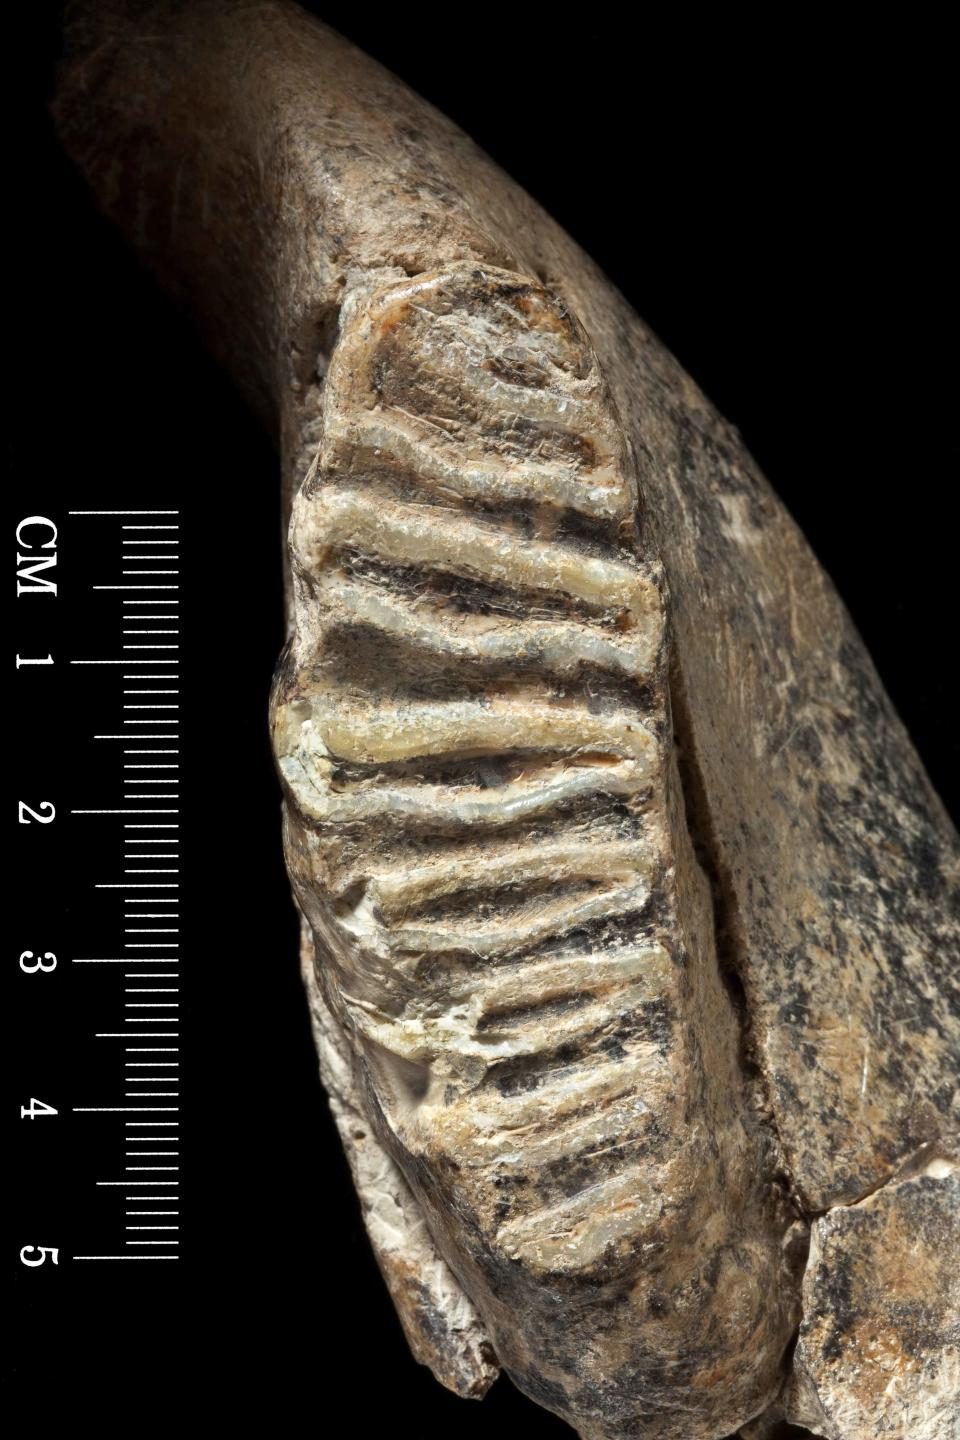 Dwarf elephant tooth – this fossil tooth and jaw bone were discovered in Cyprus by palaeontologist Dorothea Bate. Between 10,000 and 800,000 years old, they were one of the first pieces of evidence to suggest that miniature elephants once lived in the island. (Natural History Museum)